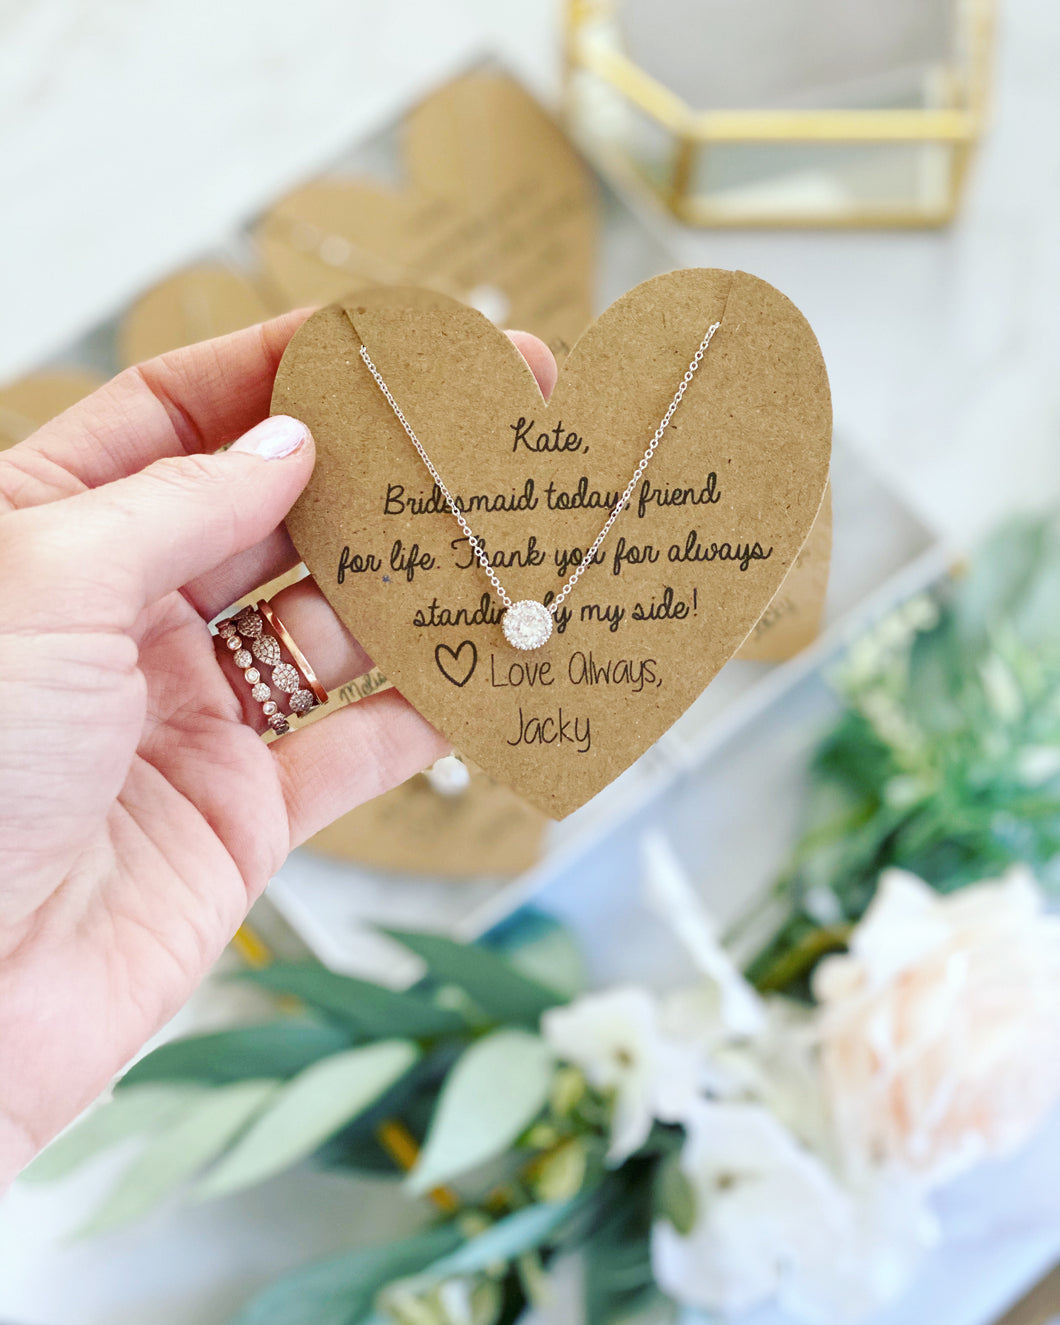 Bridesmaid Today, Friend for Life Bridesmaid Necklace!